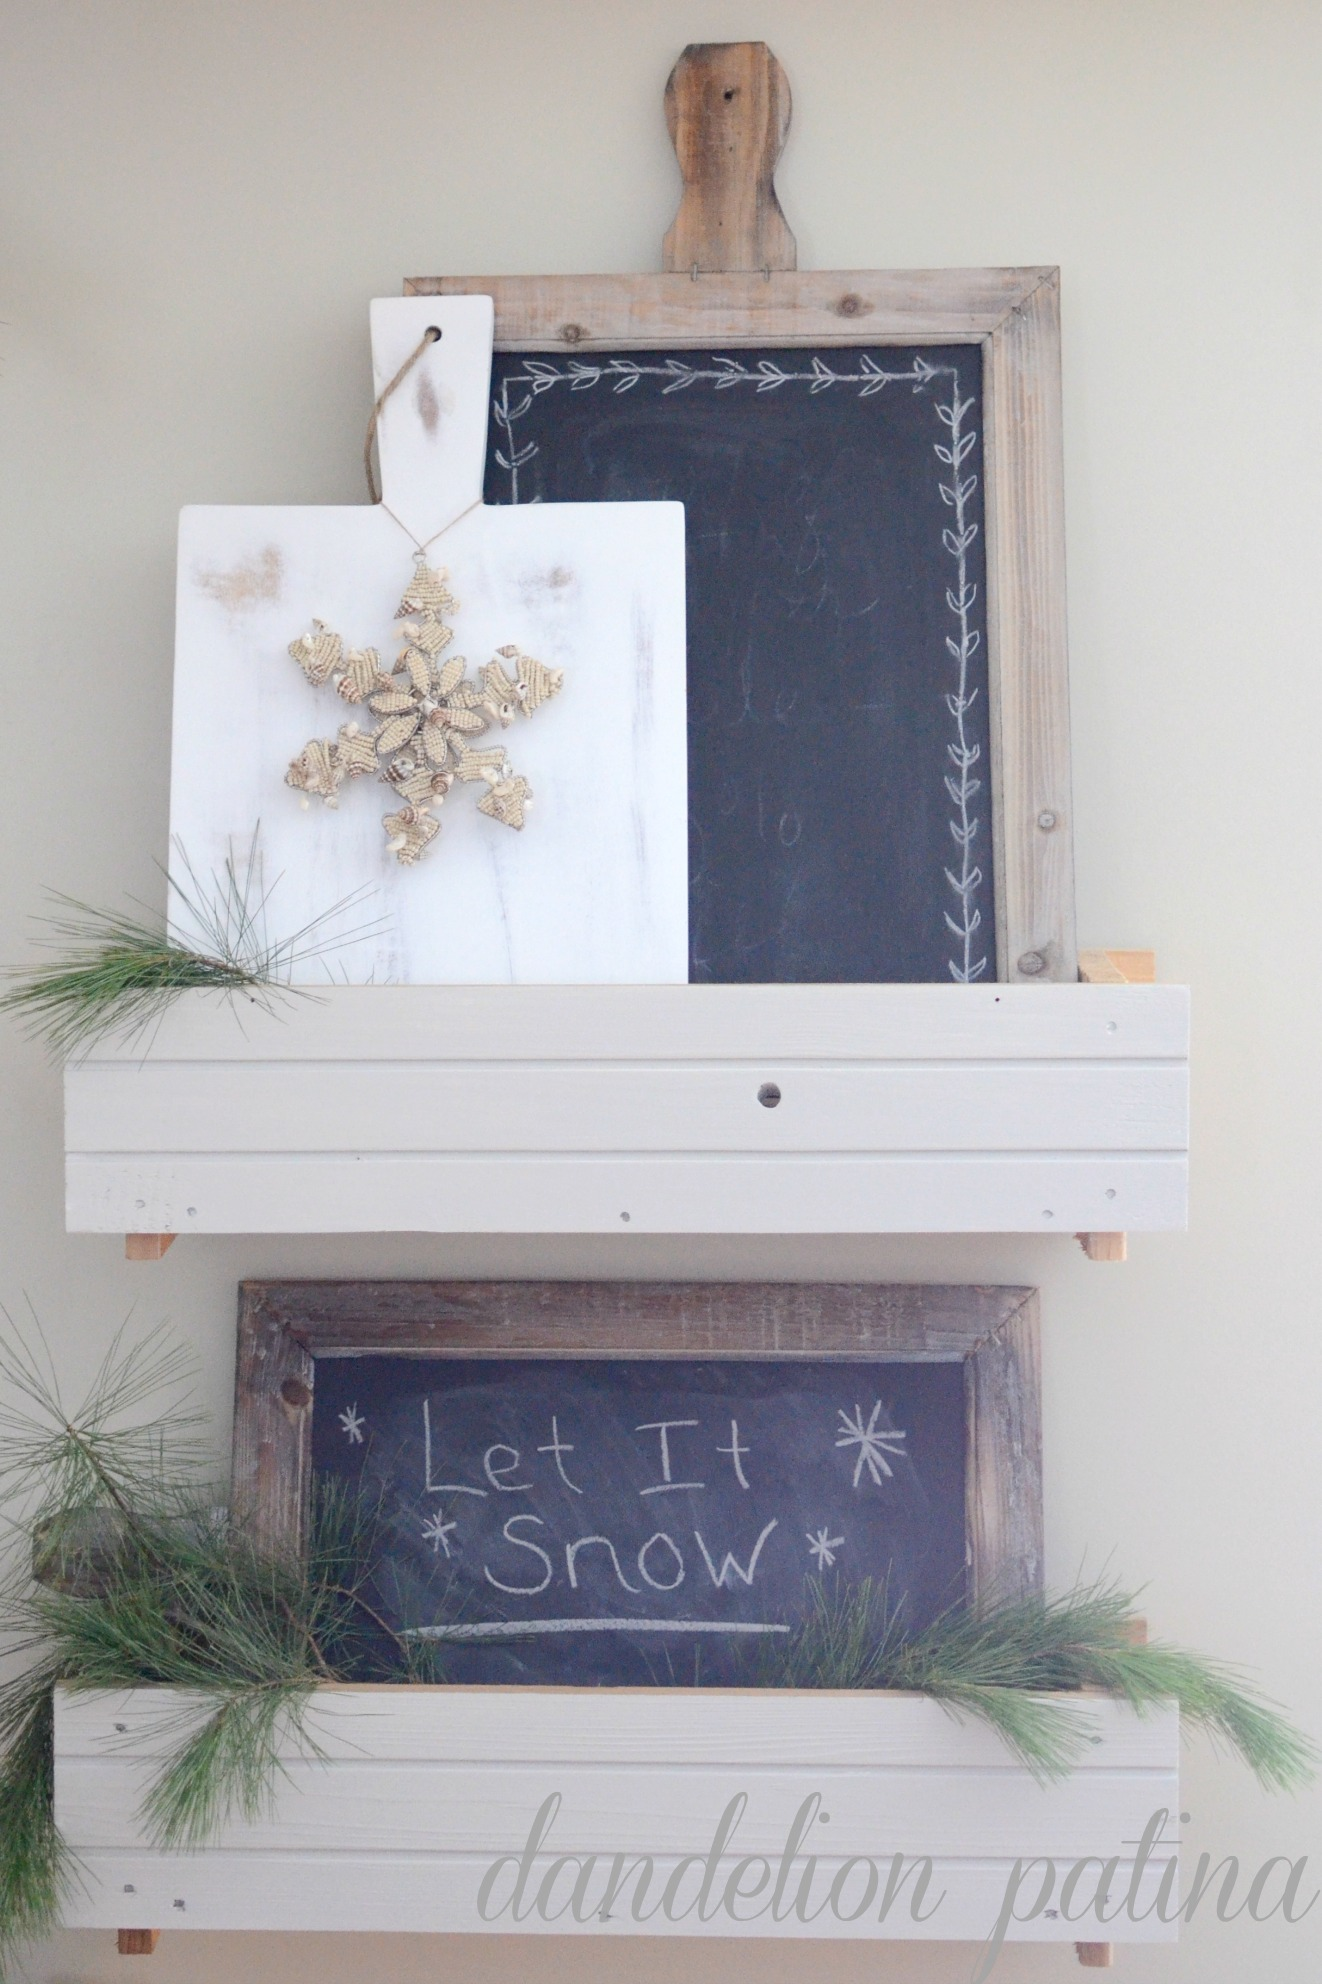 let it snow chalkboard sign